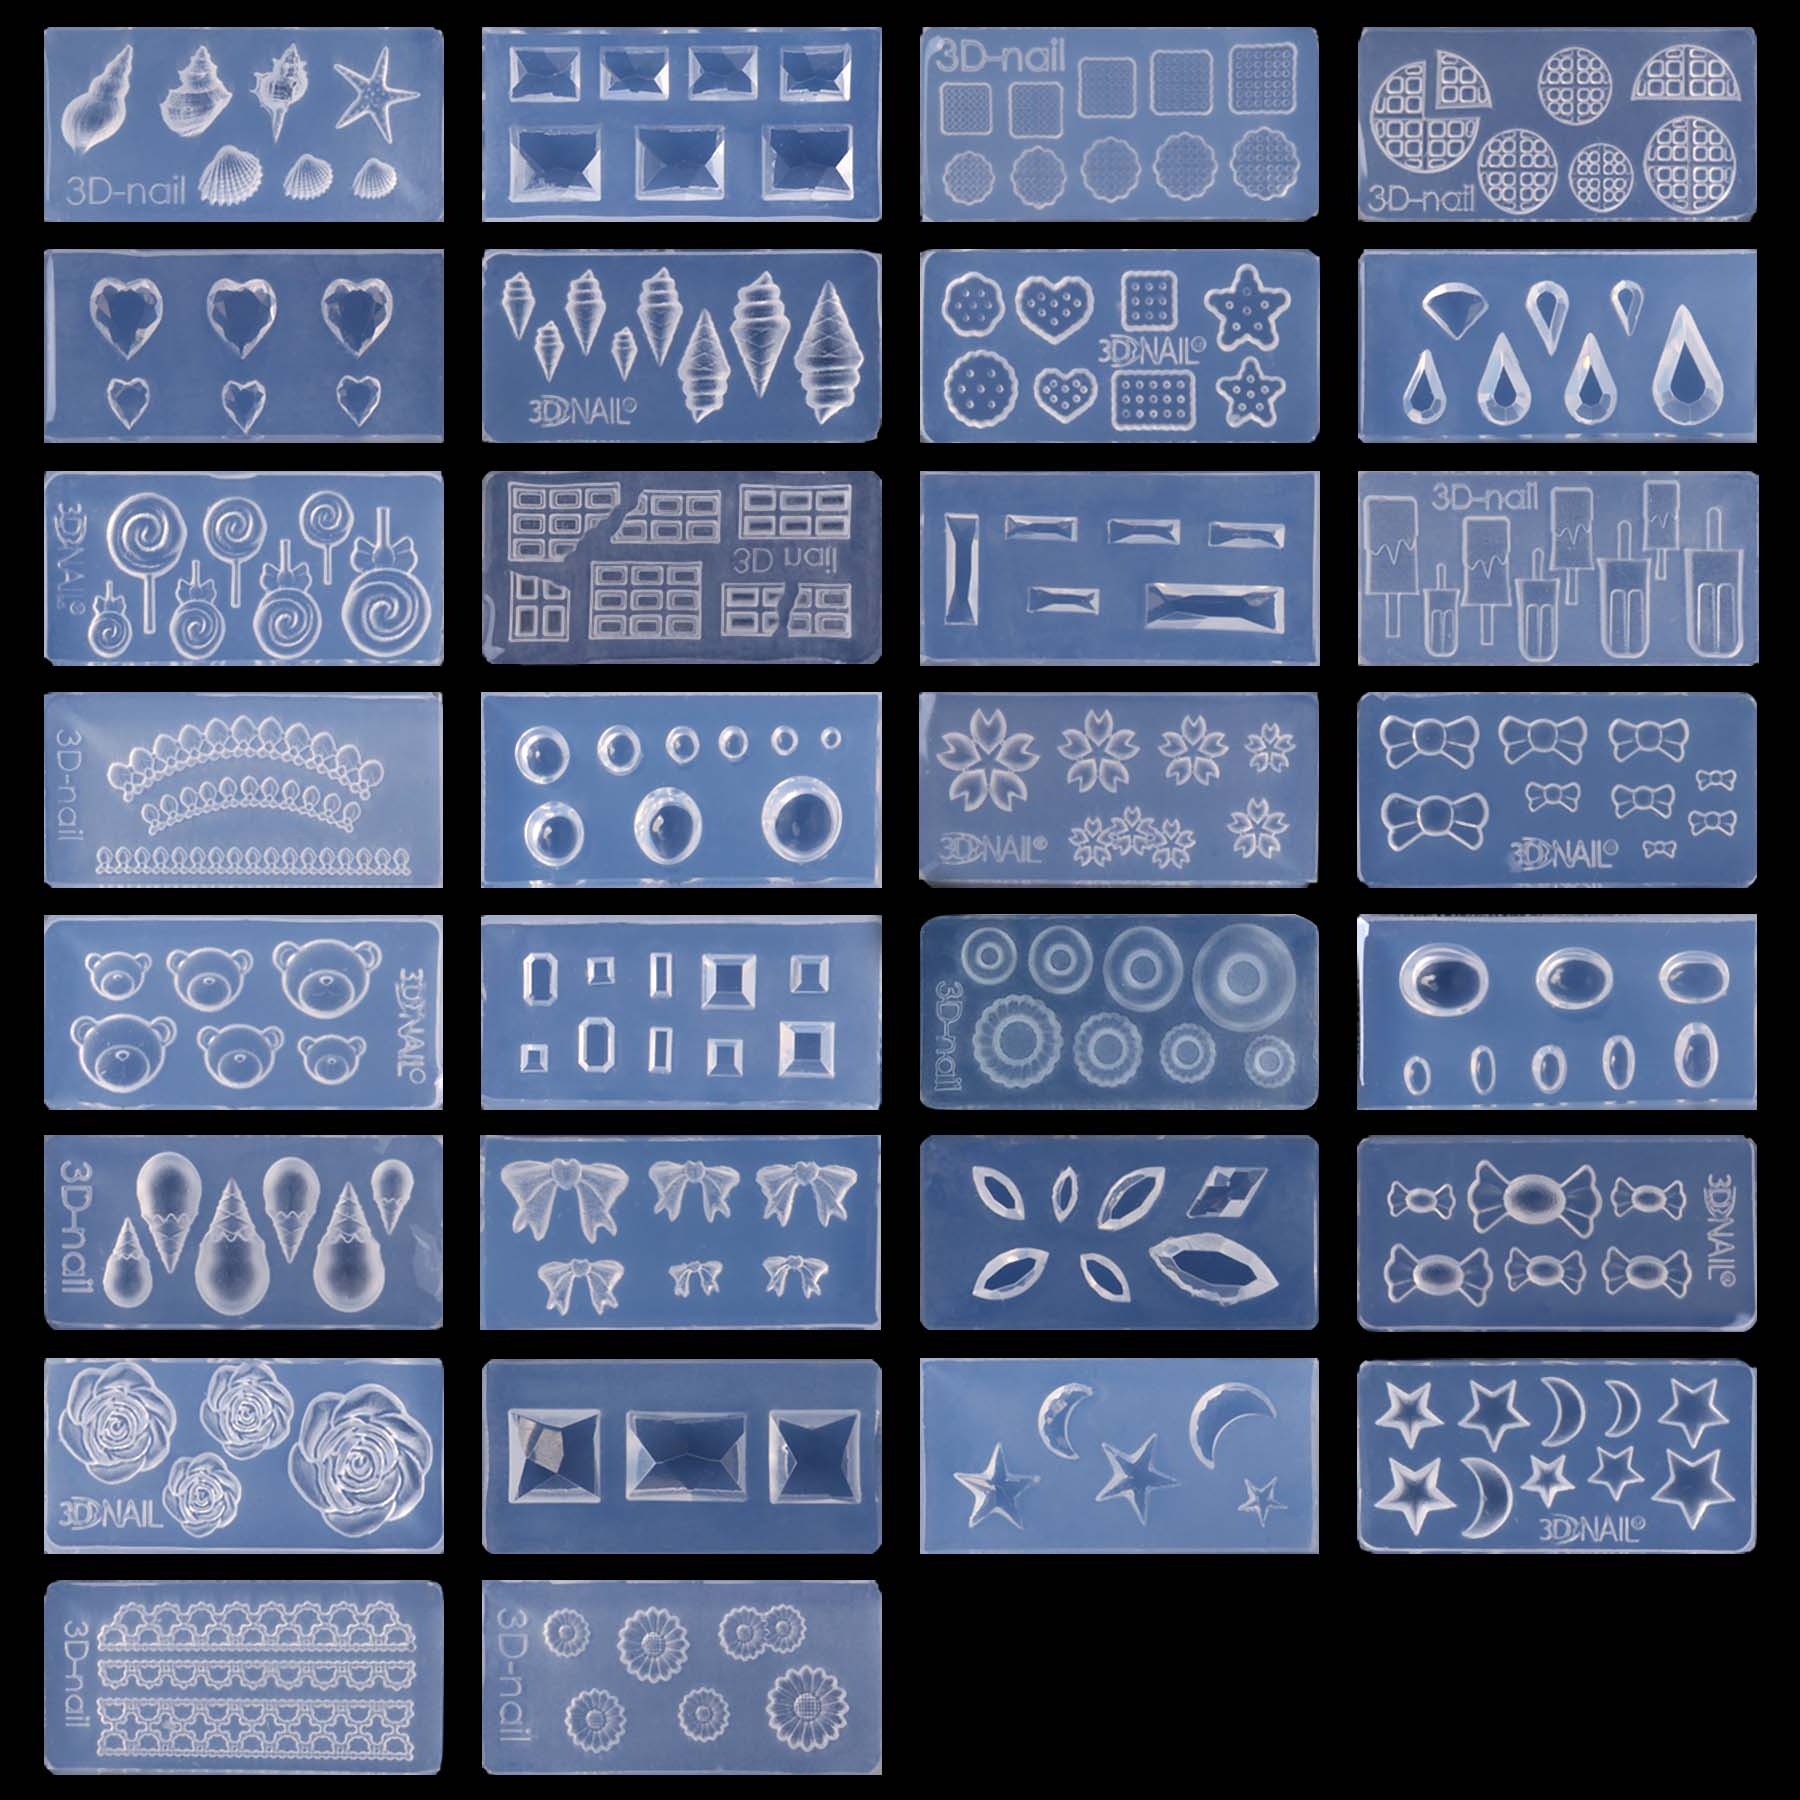 BMC 30pc DIY 3D Silicone Nail Art Decortive Acrylic Cabochon Design Mold - Set 7